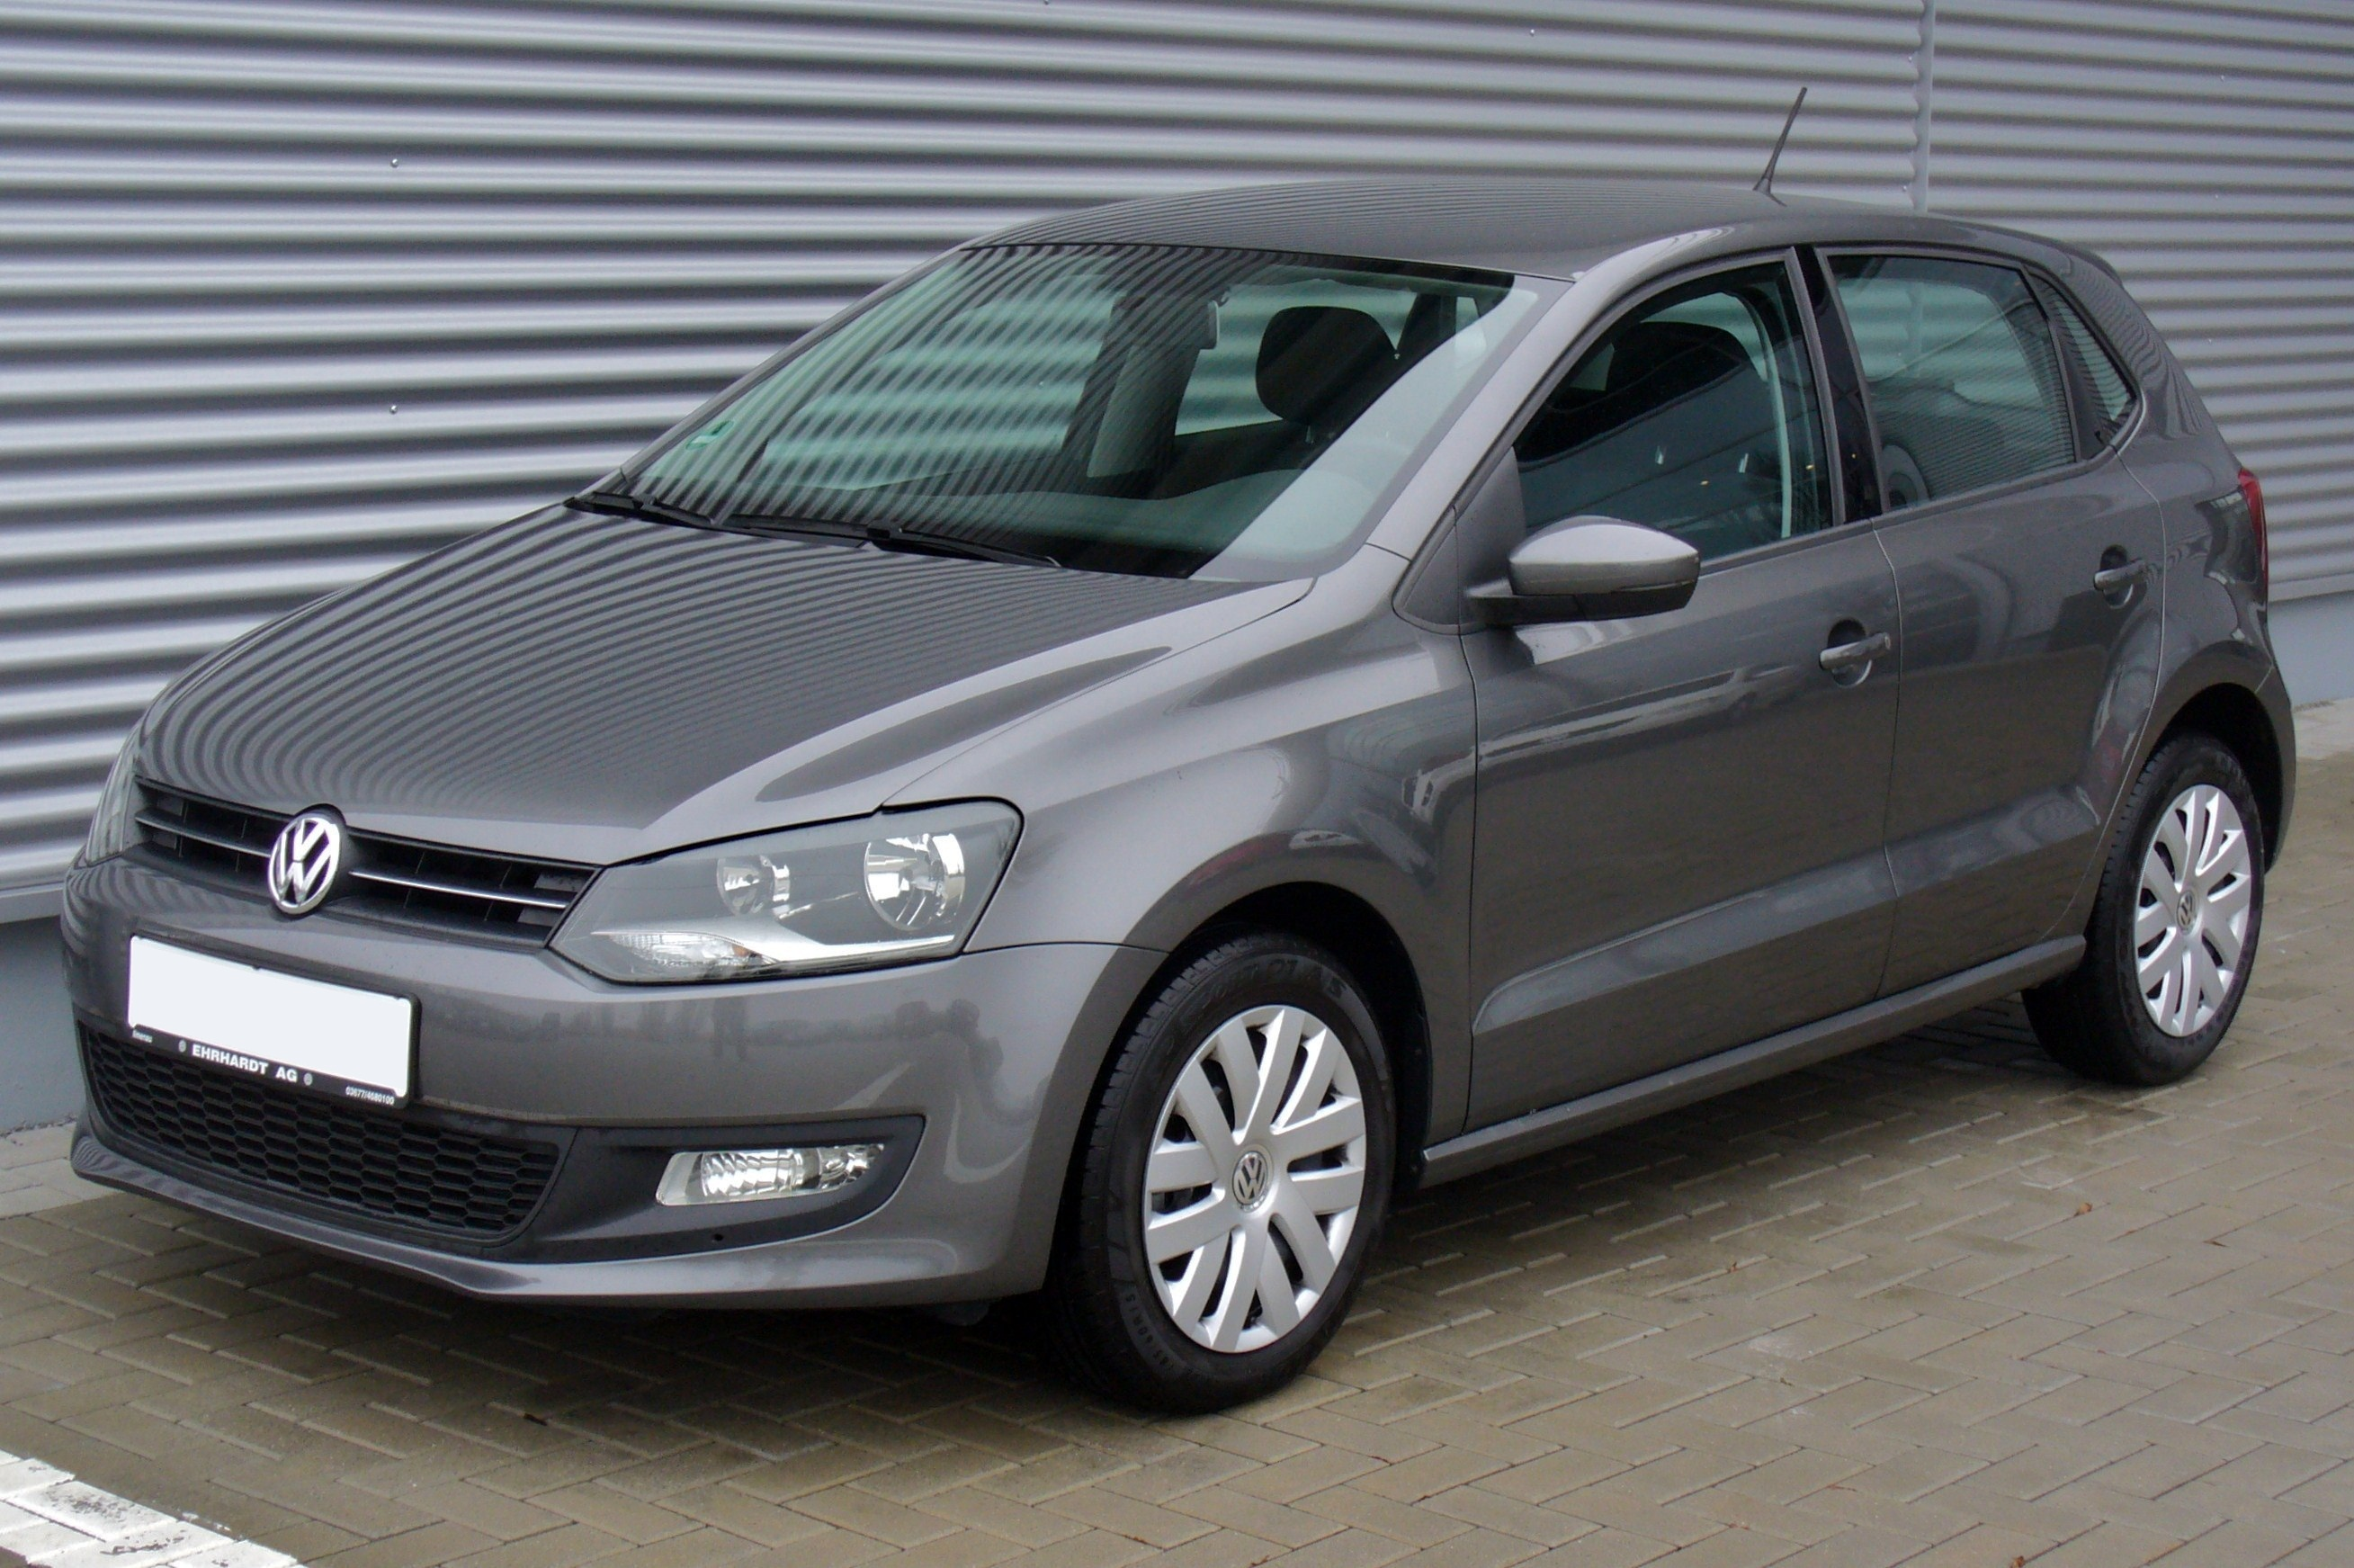 file vw polo v 1 2 comfortline pepper grey jpg wikimedia